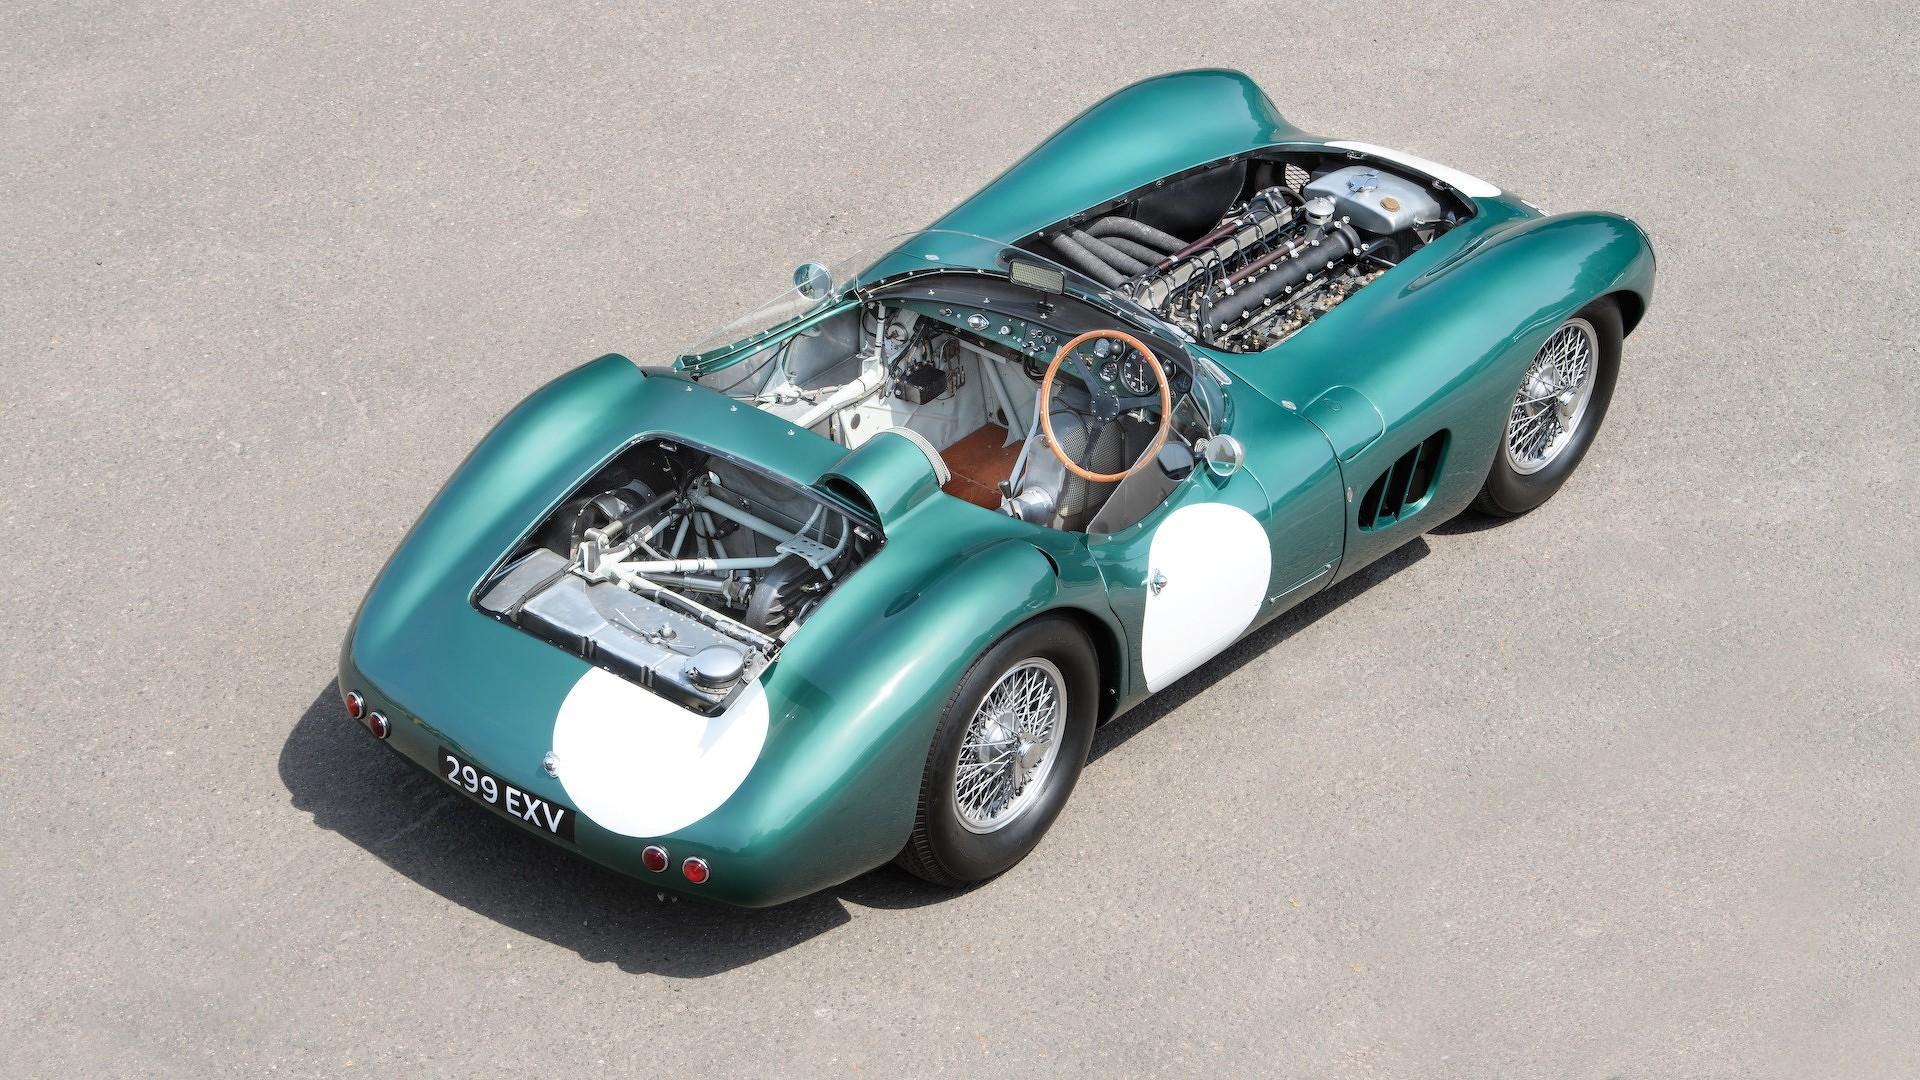 22 6m Aston Martin Dbr1 Becomes Most Expensive British Car Ever